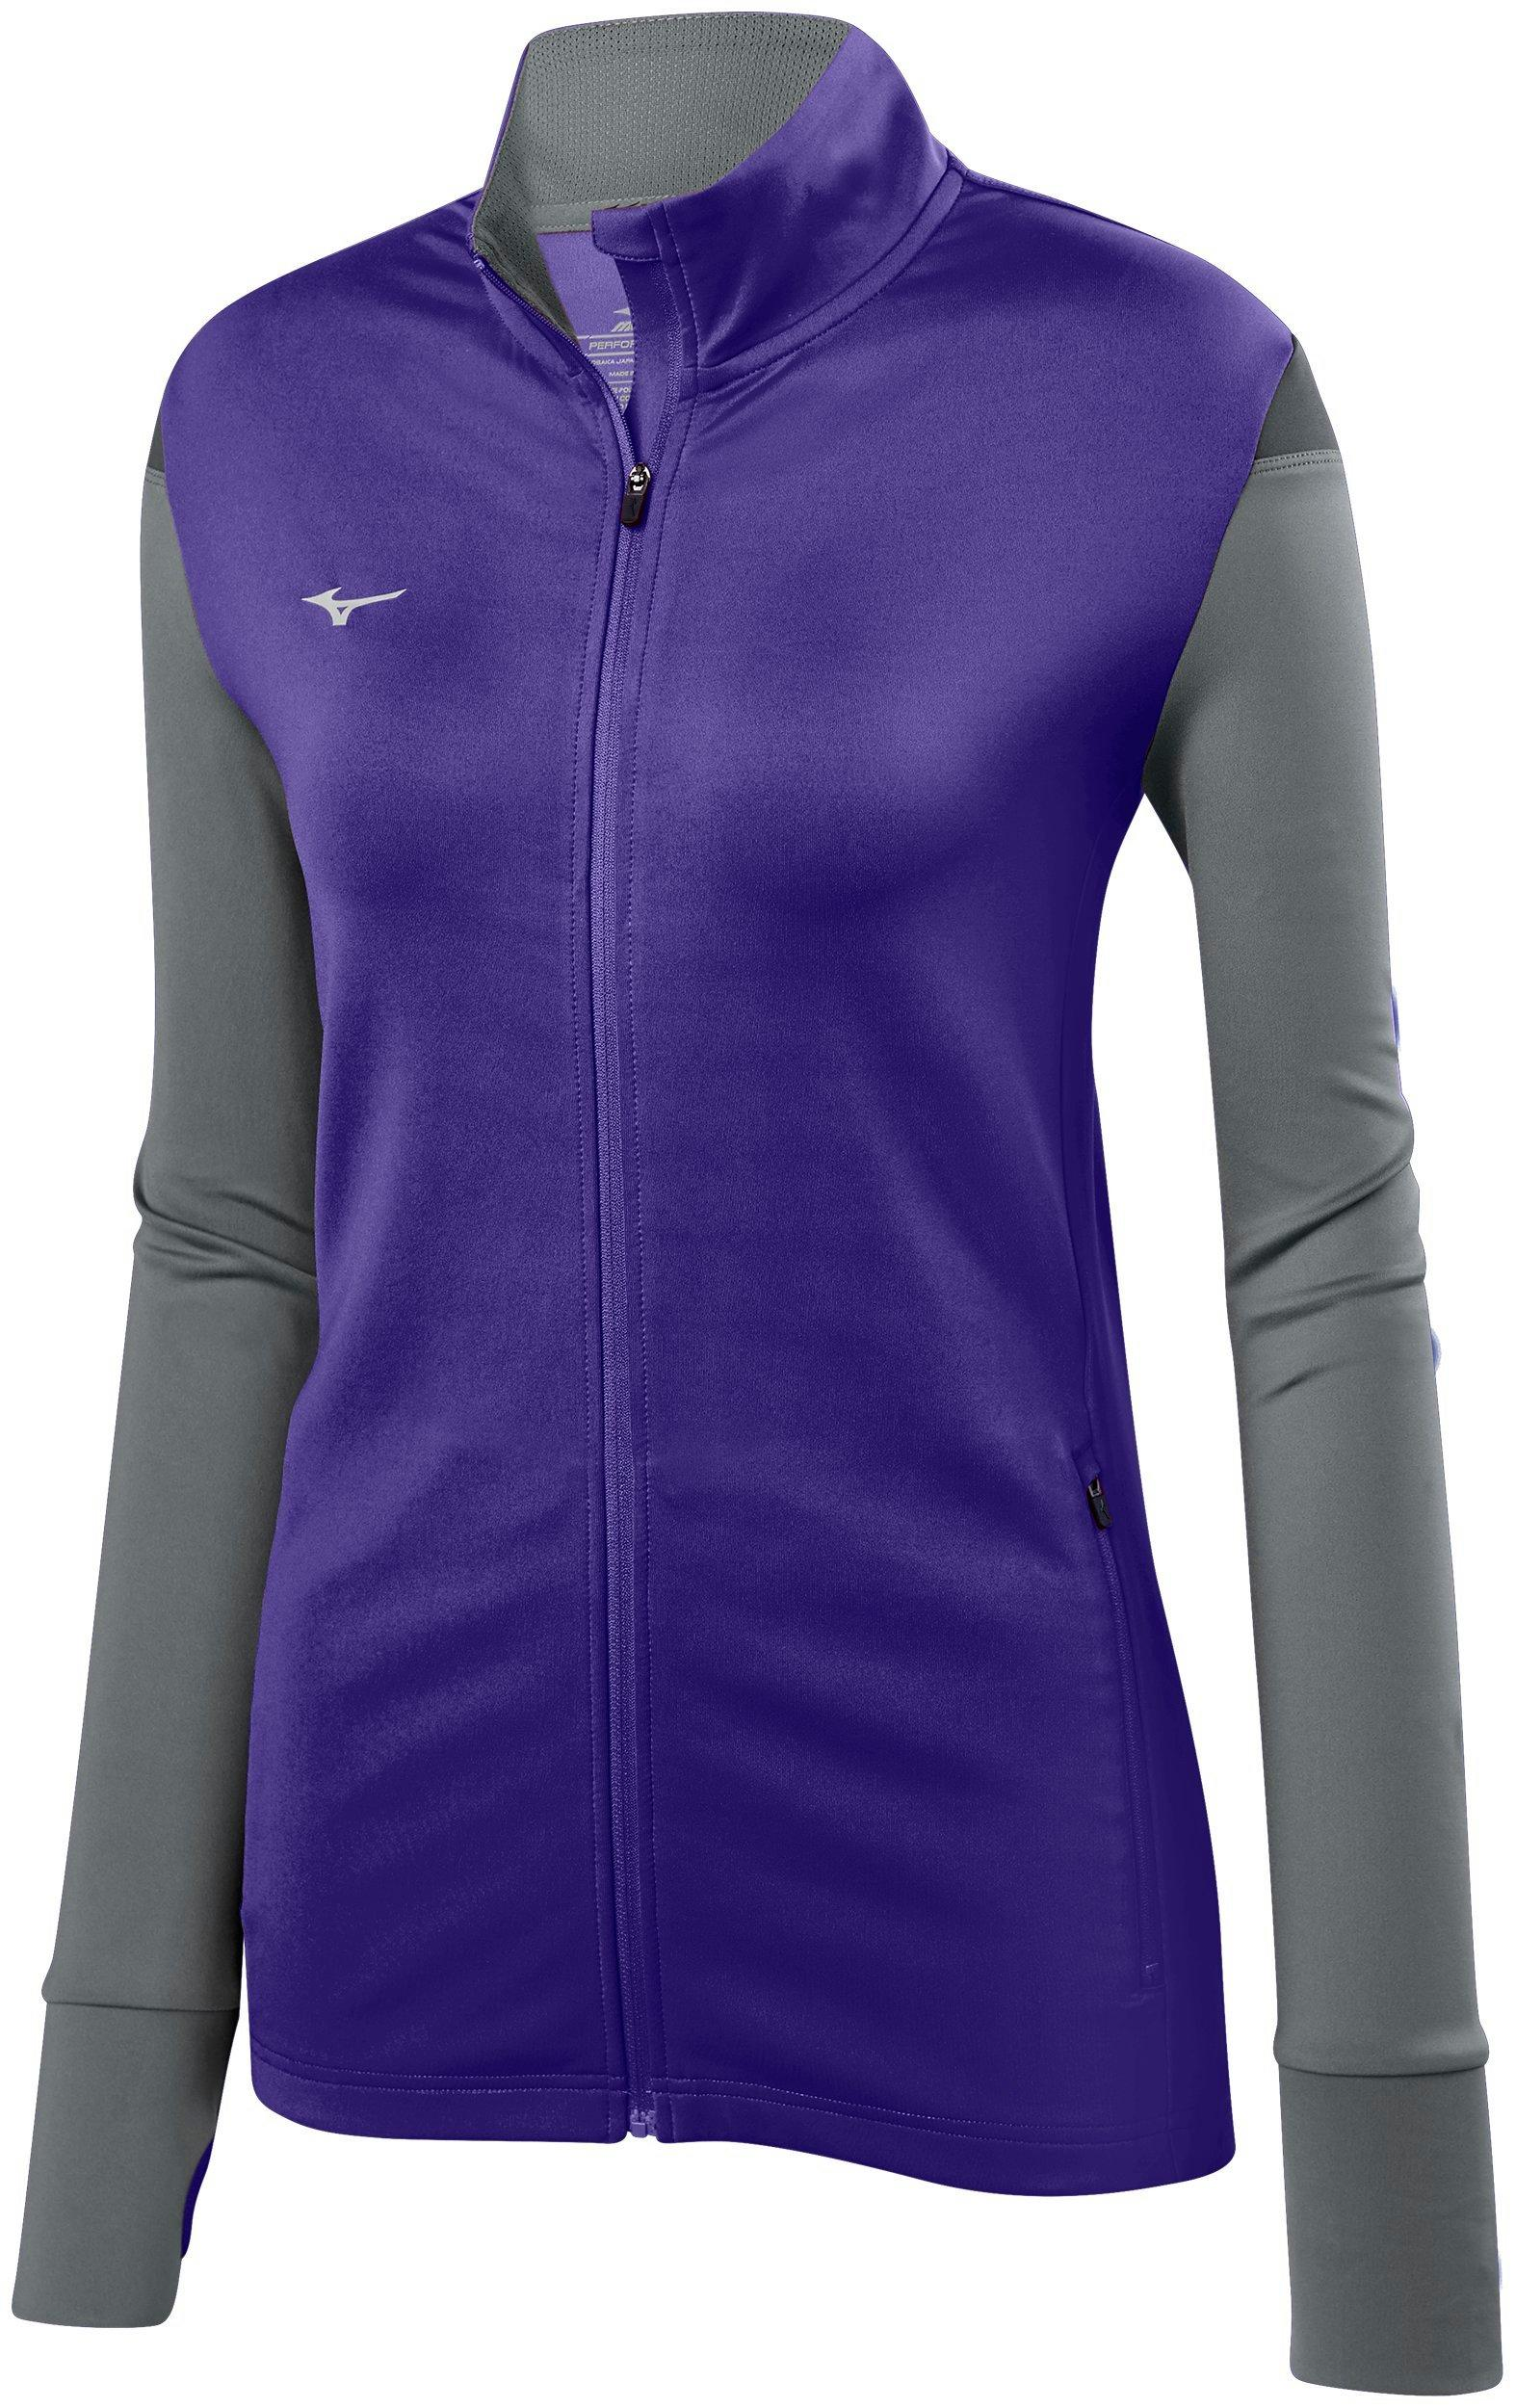 Mizuno Womens Volleyball Apparel Horizon Full Zip Volleyball Jacket 440660 by Mizuno